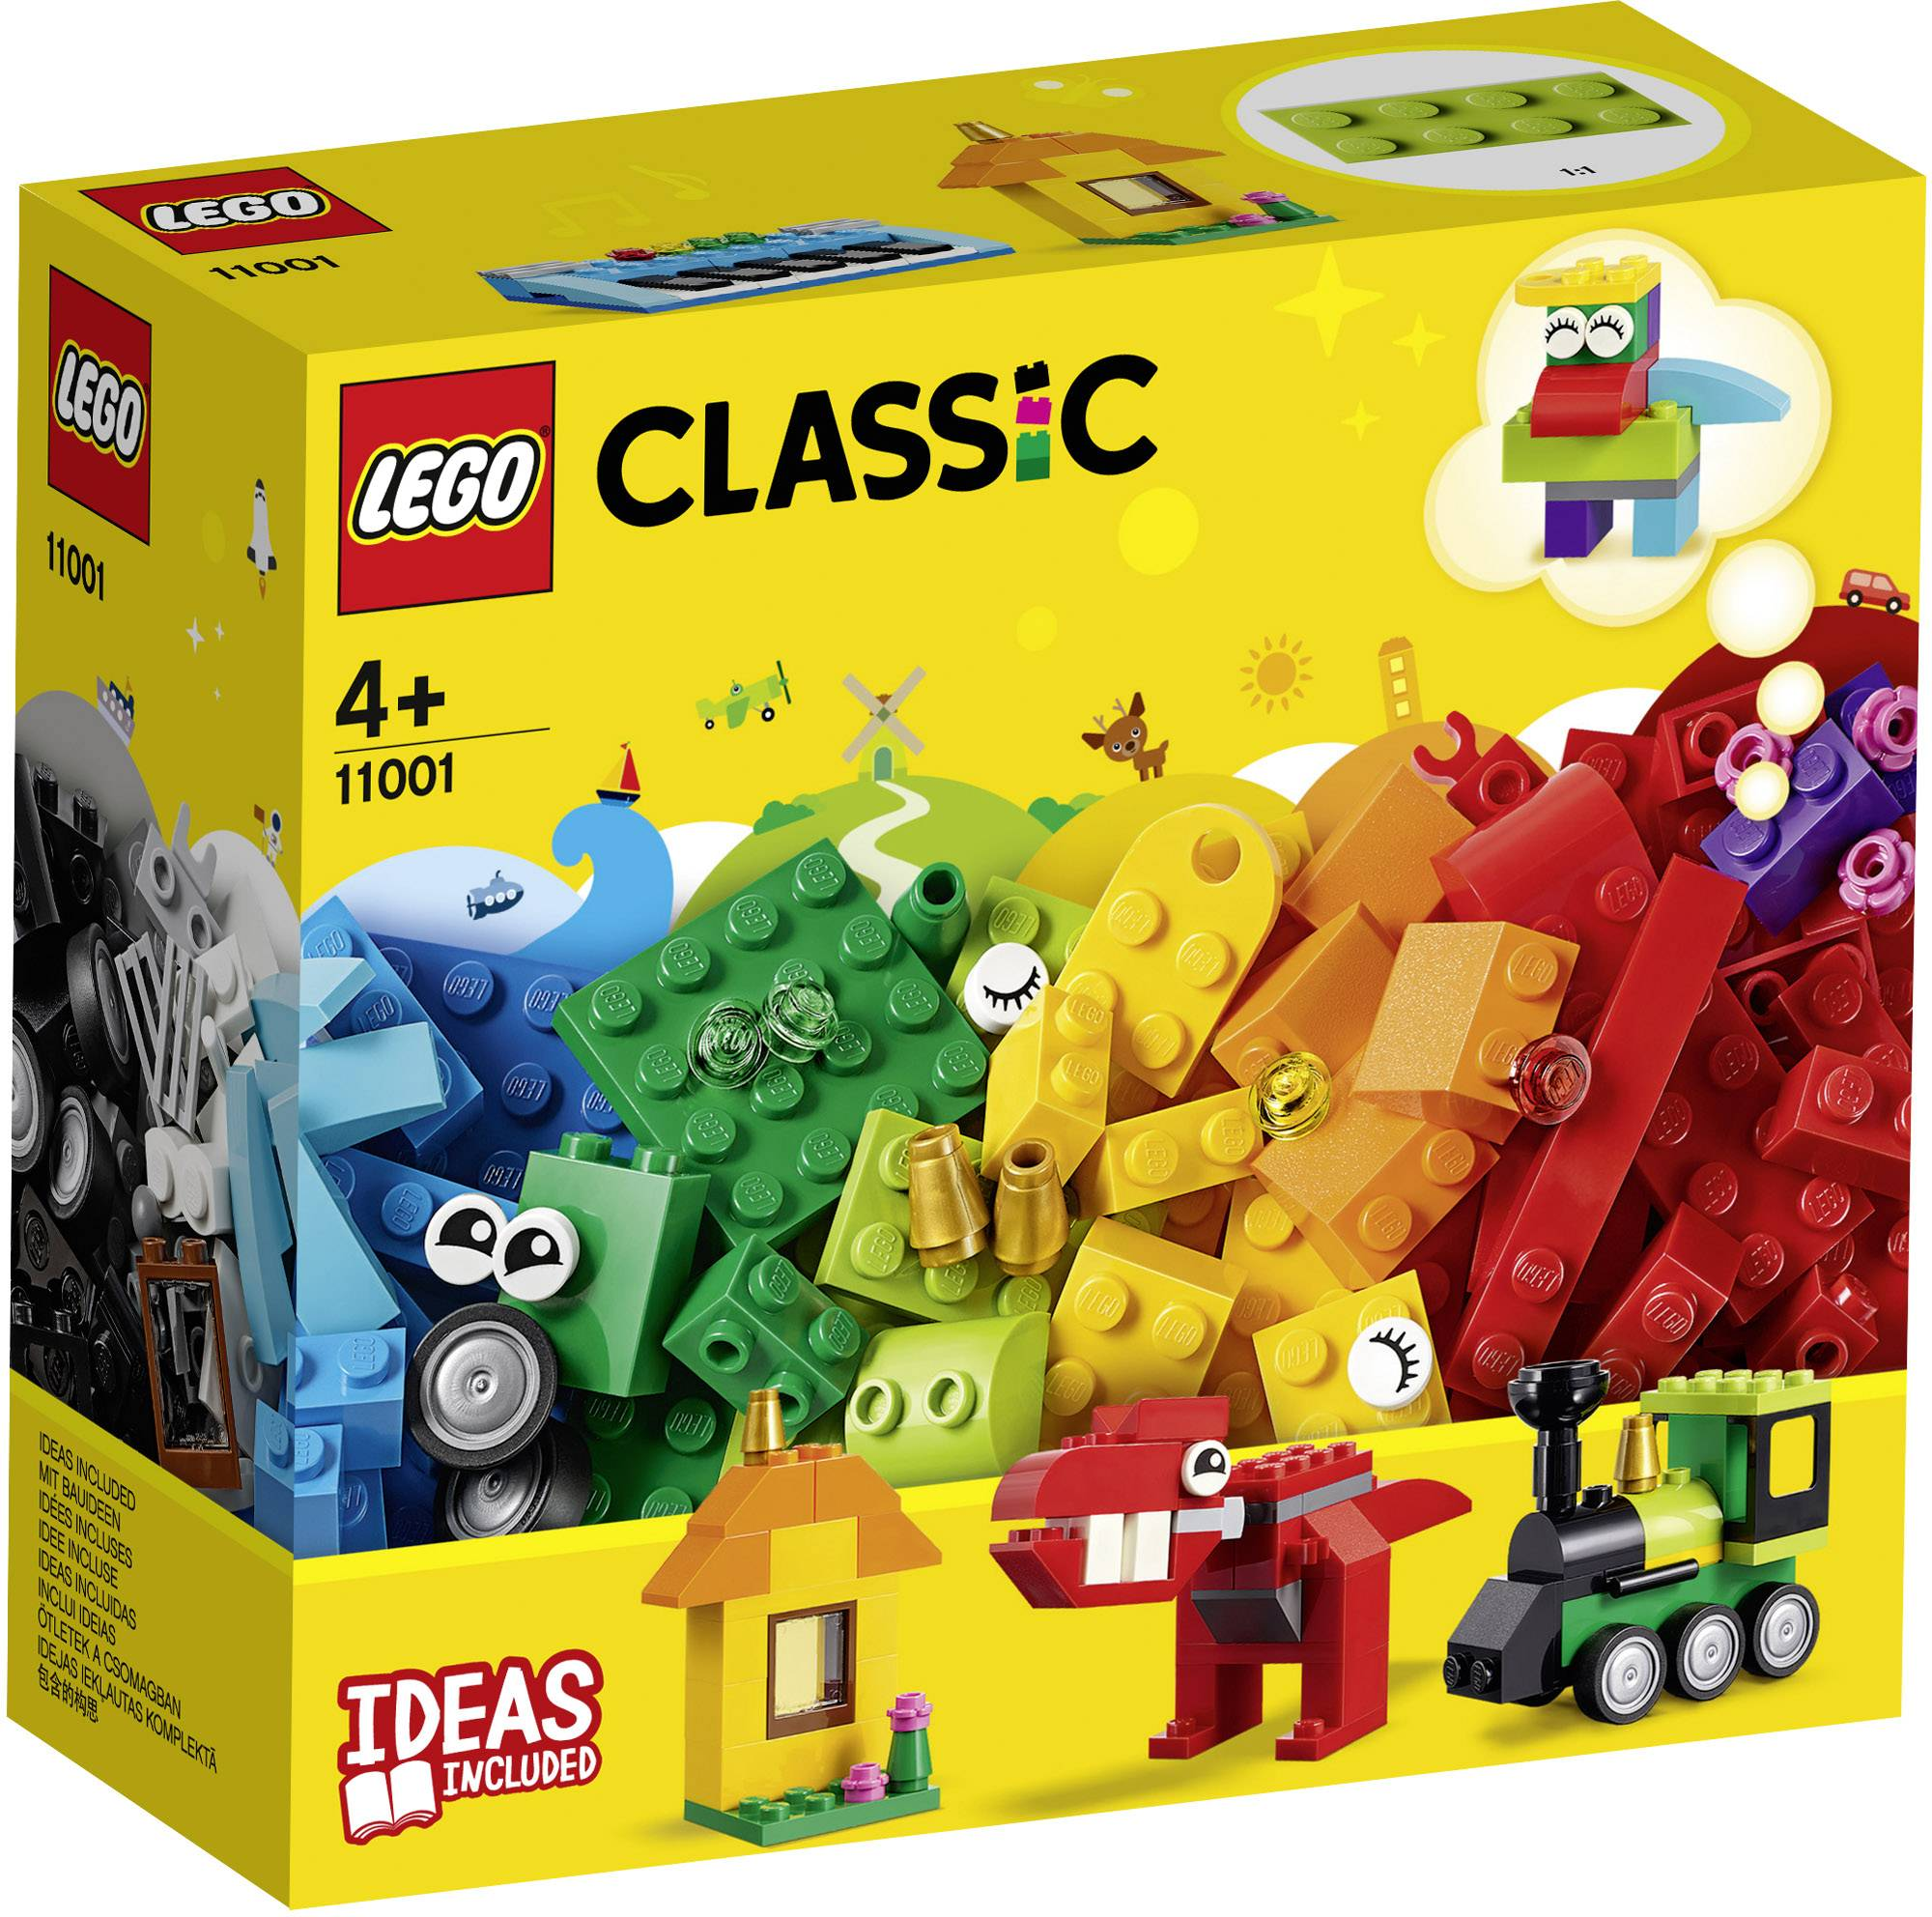 LEGO Classic - Bricks and Ideas